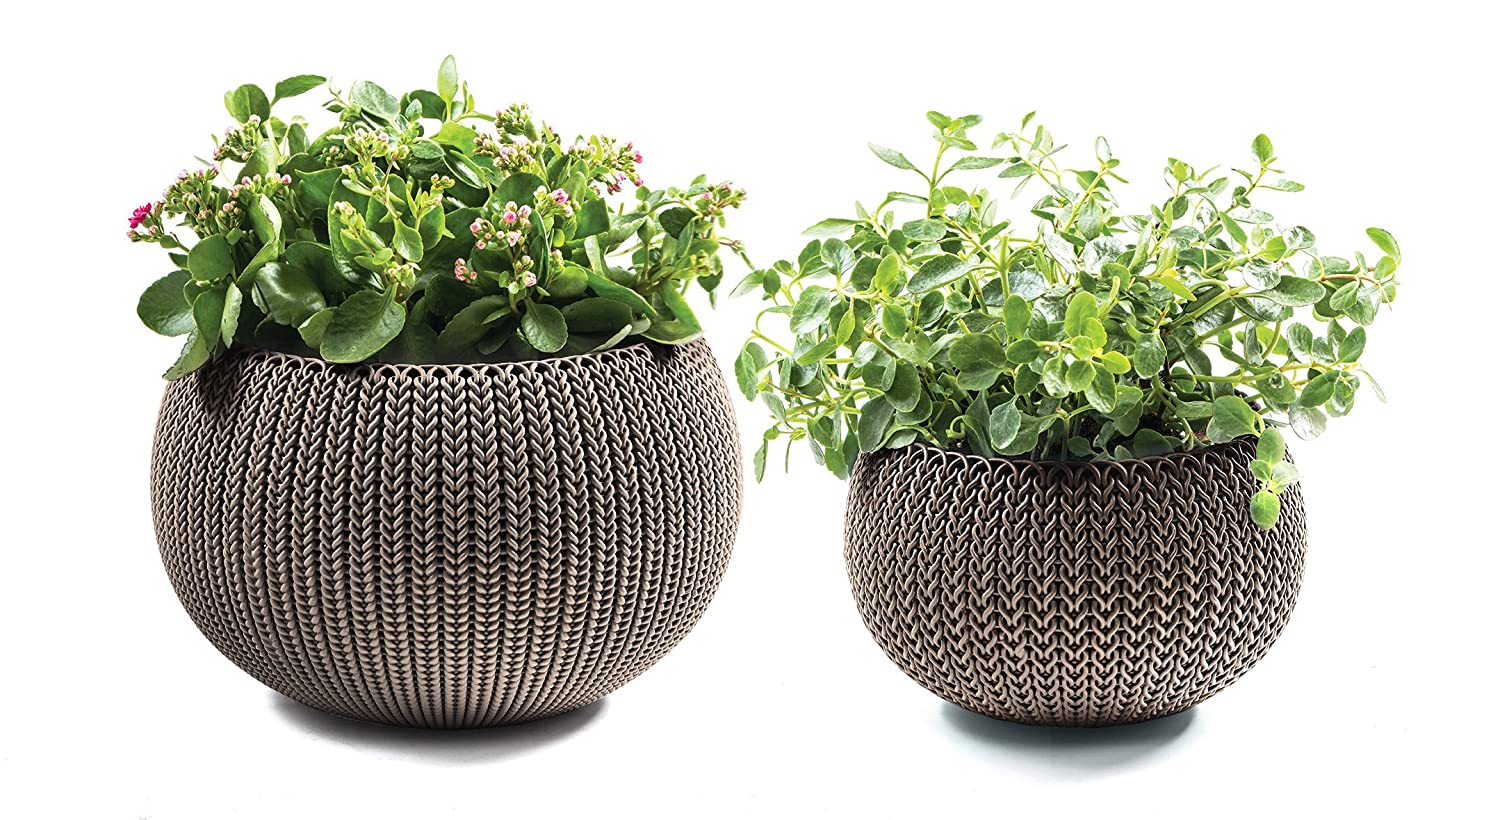 Amazon.com : Keter Cozies Plastic Planters Set Of 2, Knit Texture, Small U0026  Medium Pots With Removable Liners, Harvest Brown : Garden U0026 Outdoor